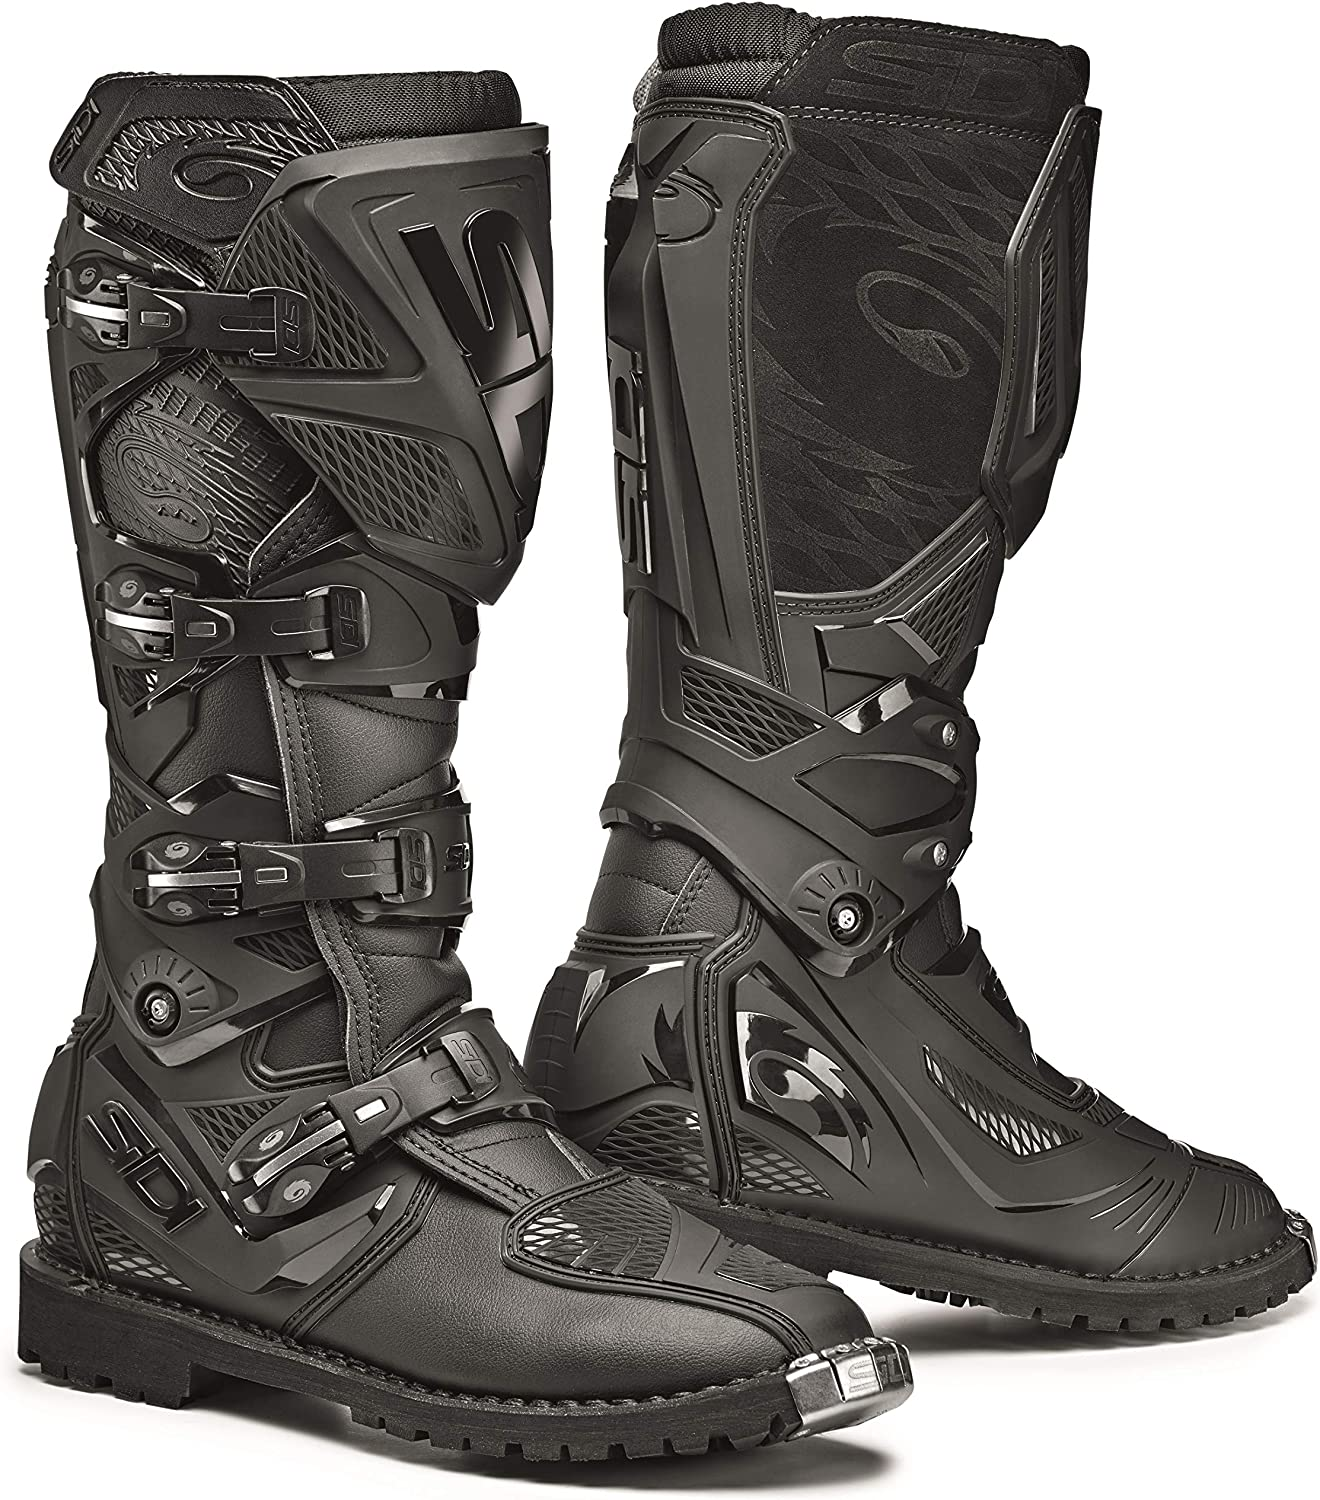 Sidi X-3 Enduro Motorcycle Boots Black, 8.5